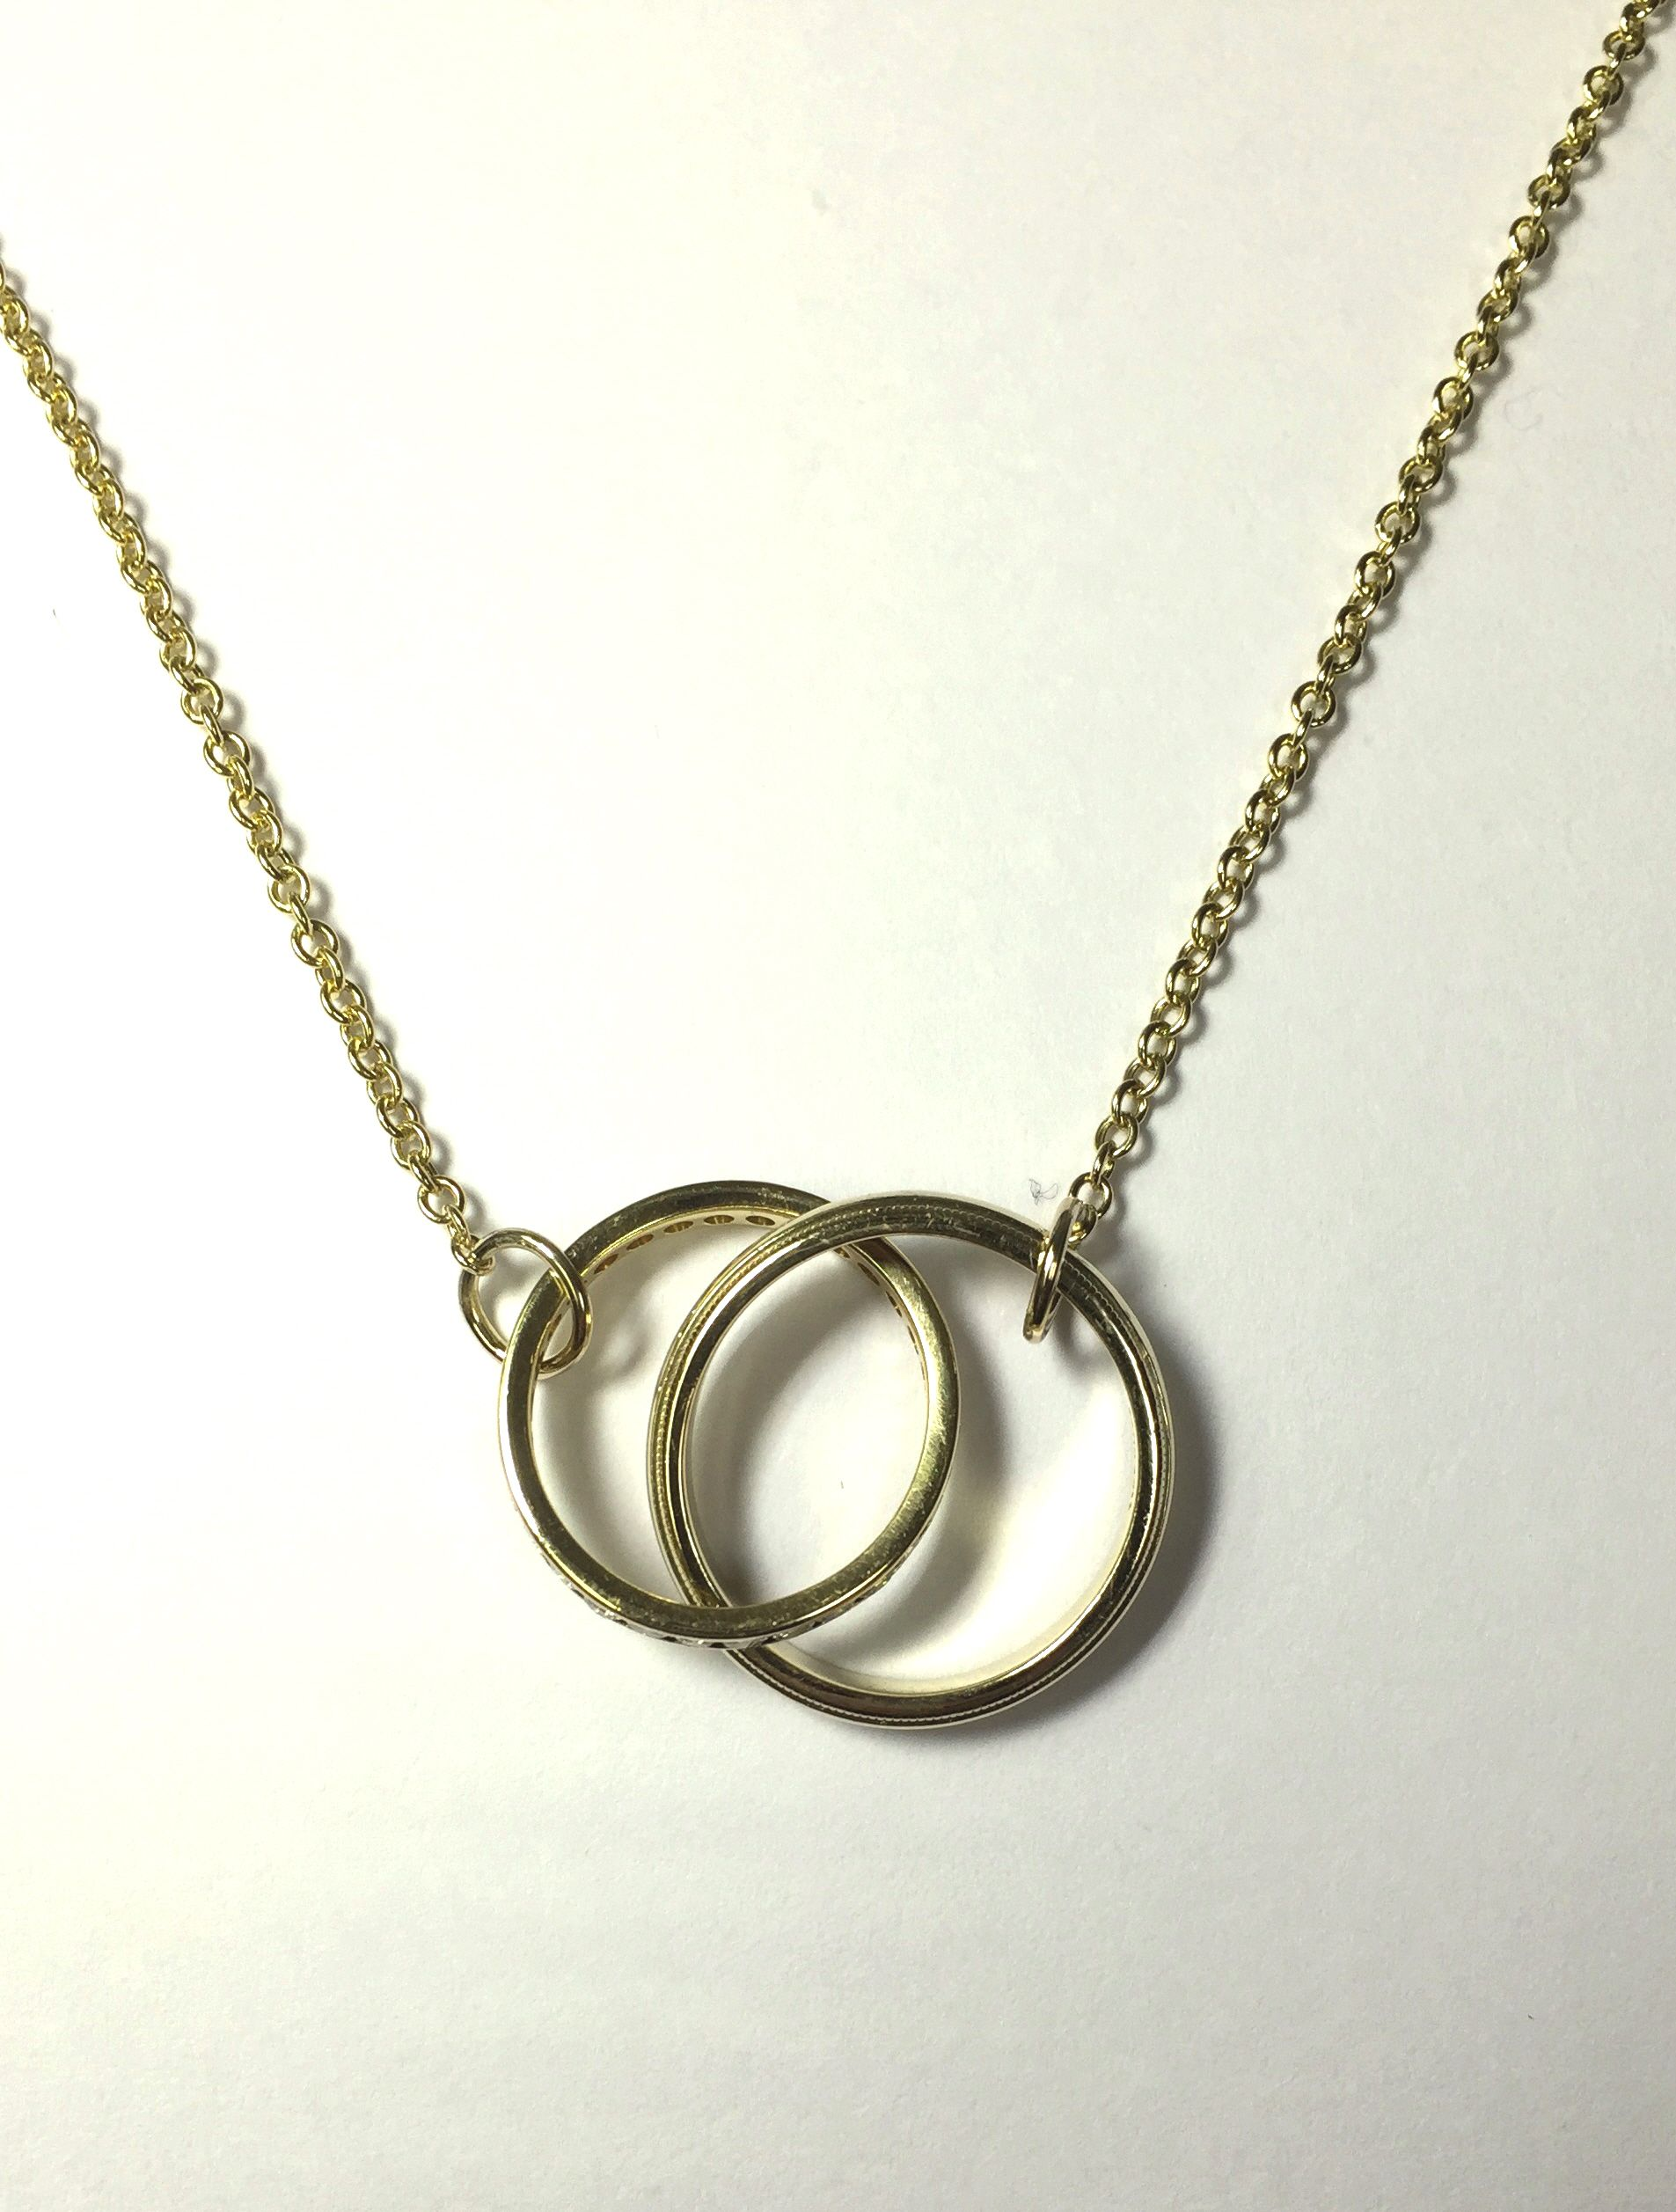 Beloved wedding band made into a necklace pendant